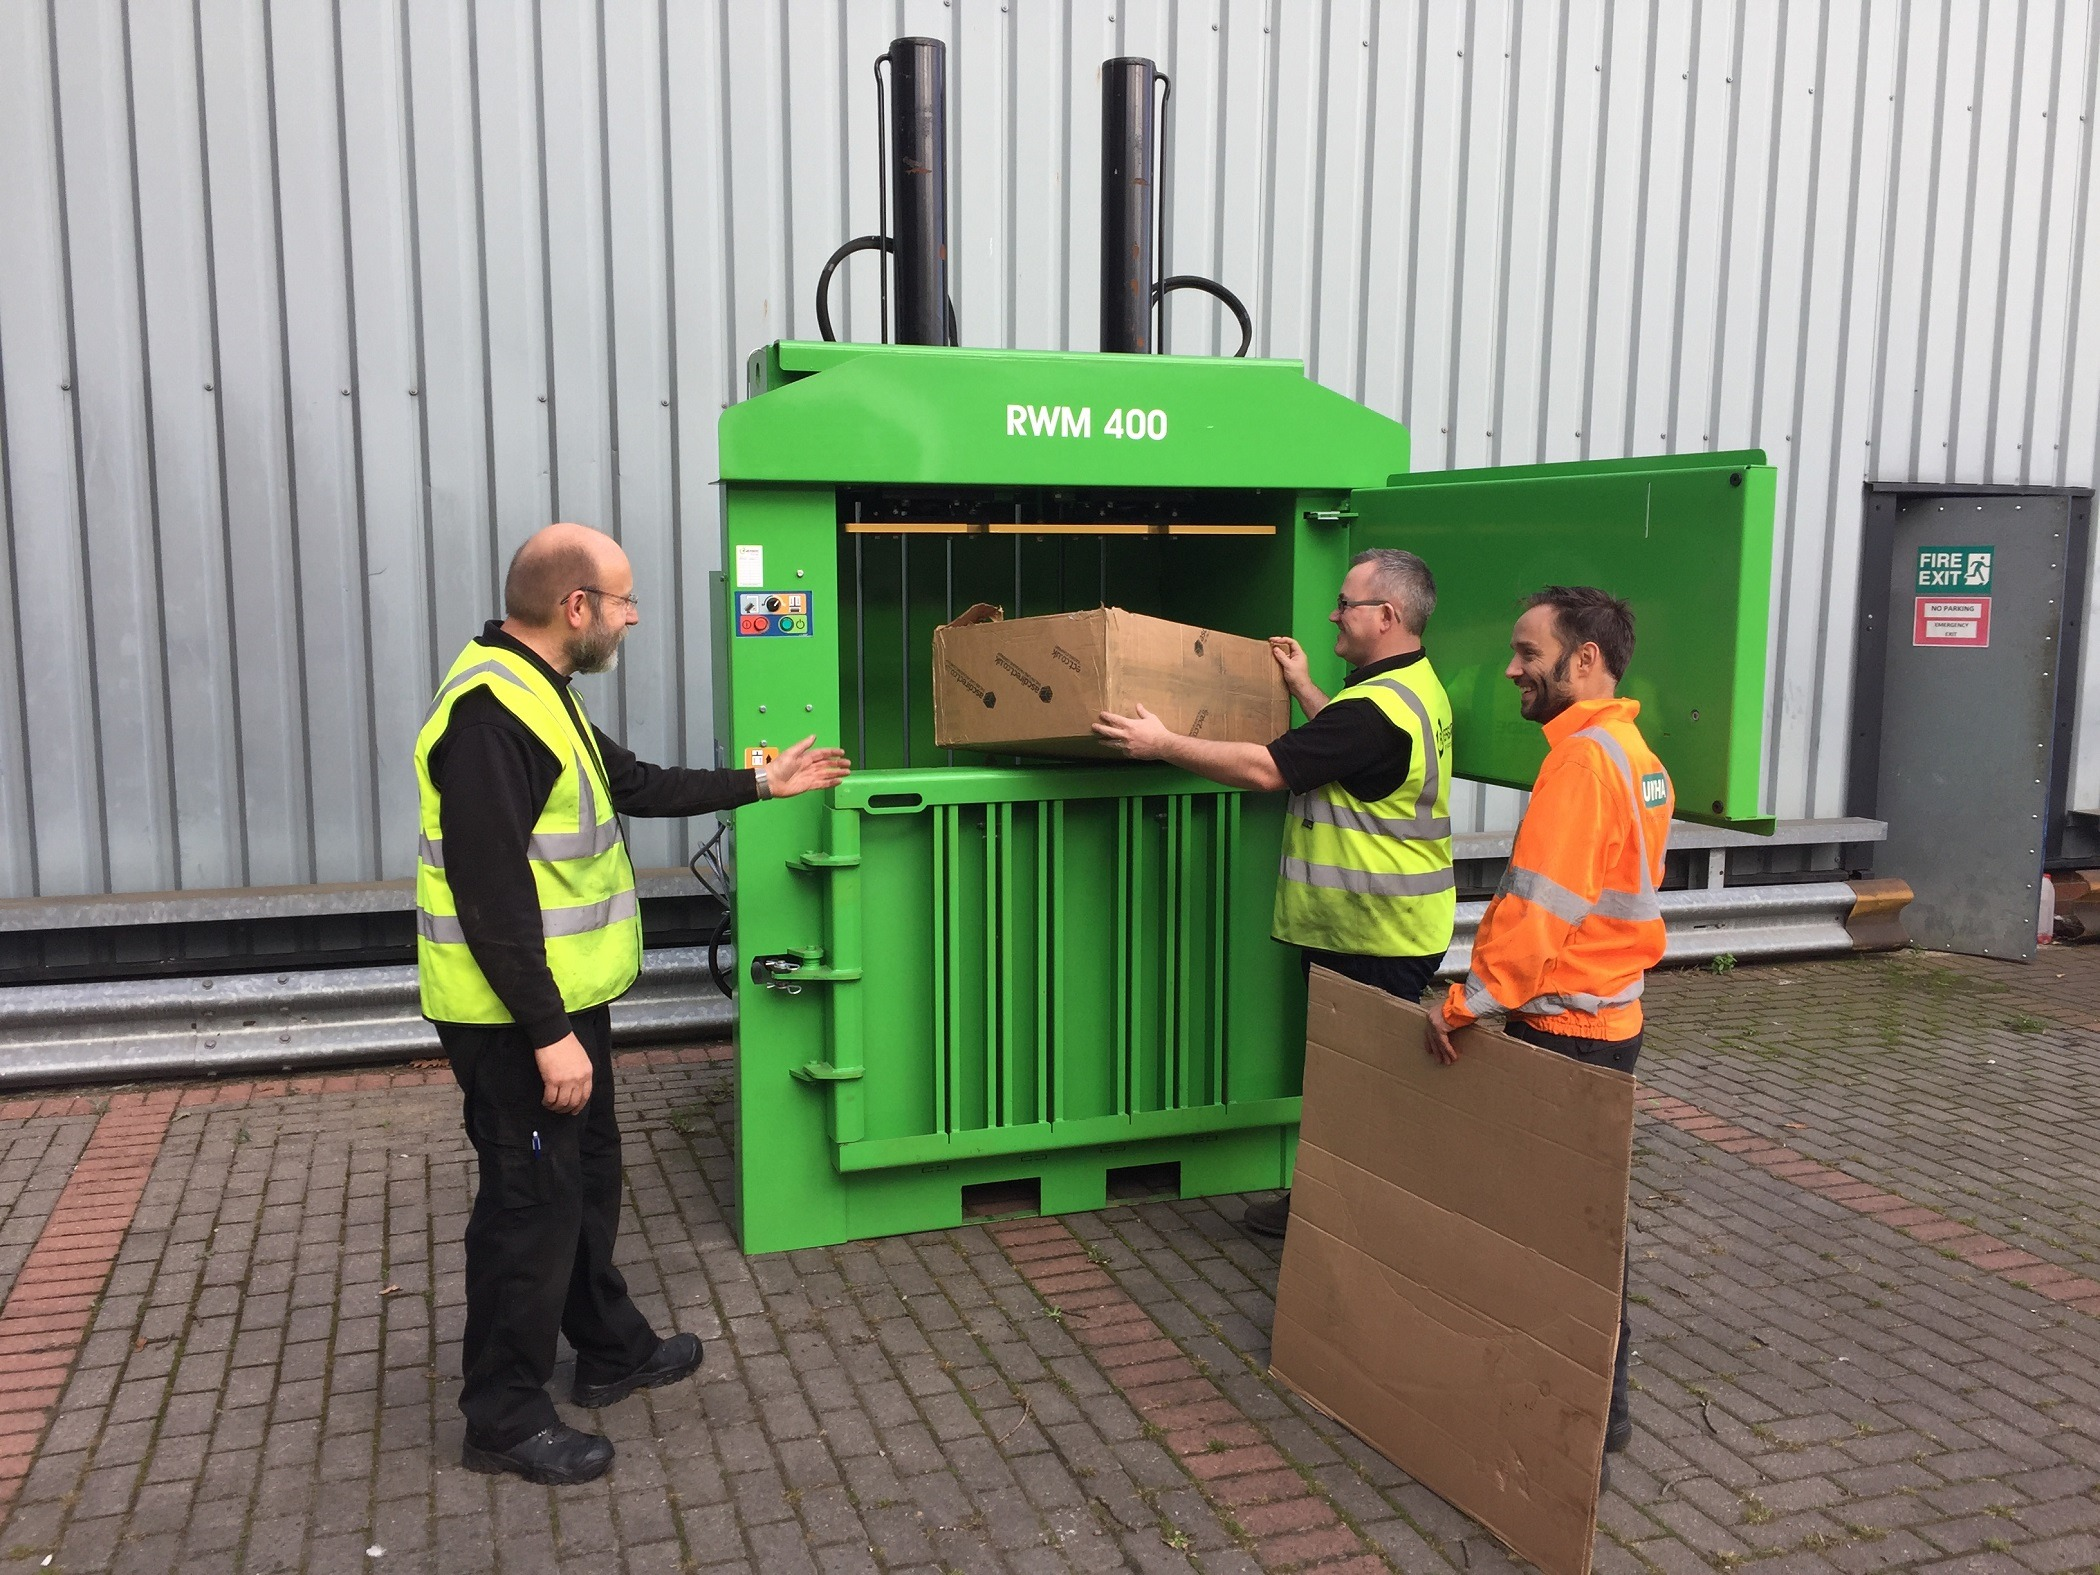 Waste baler training boosts skill-sets and safety